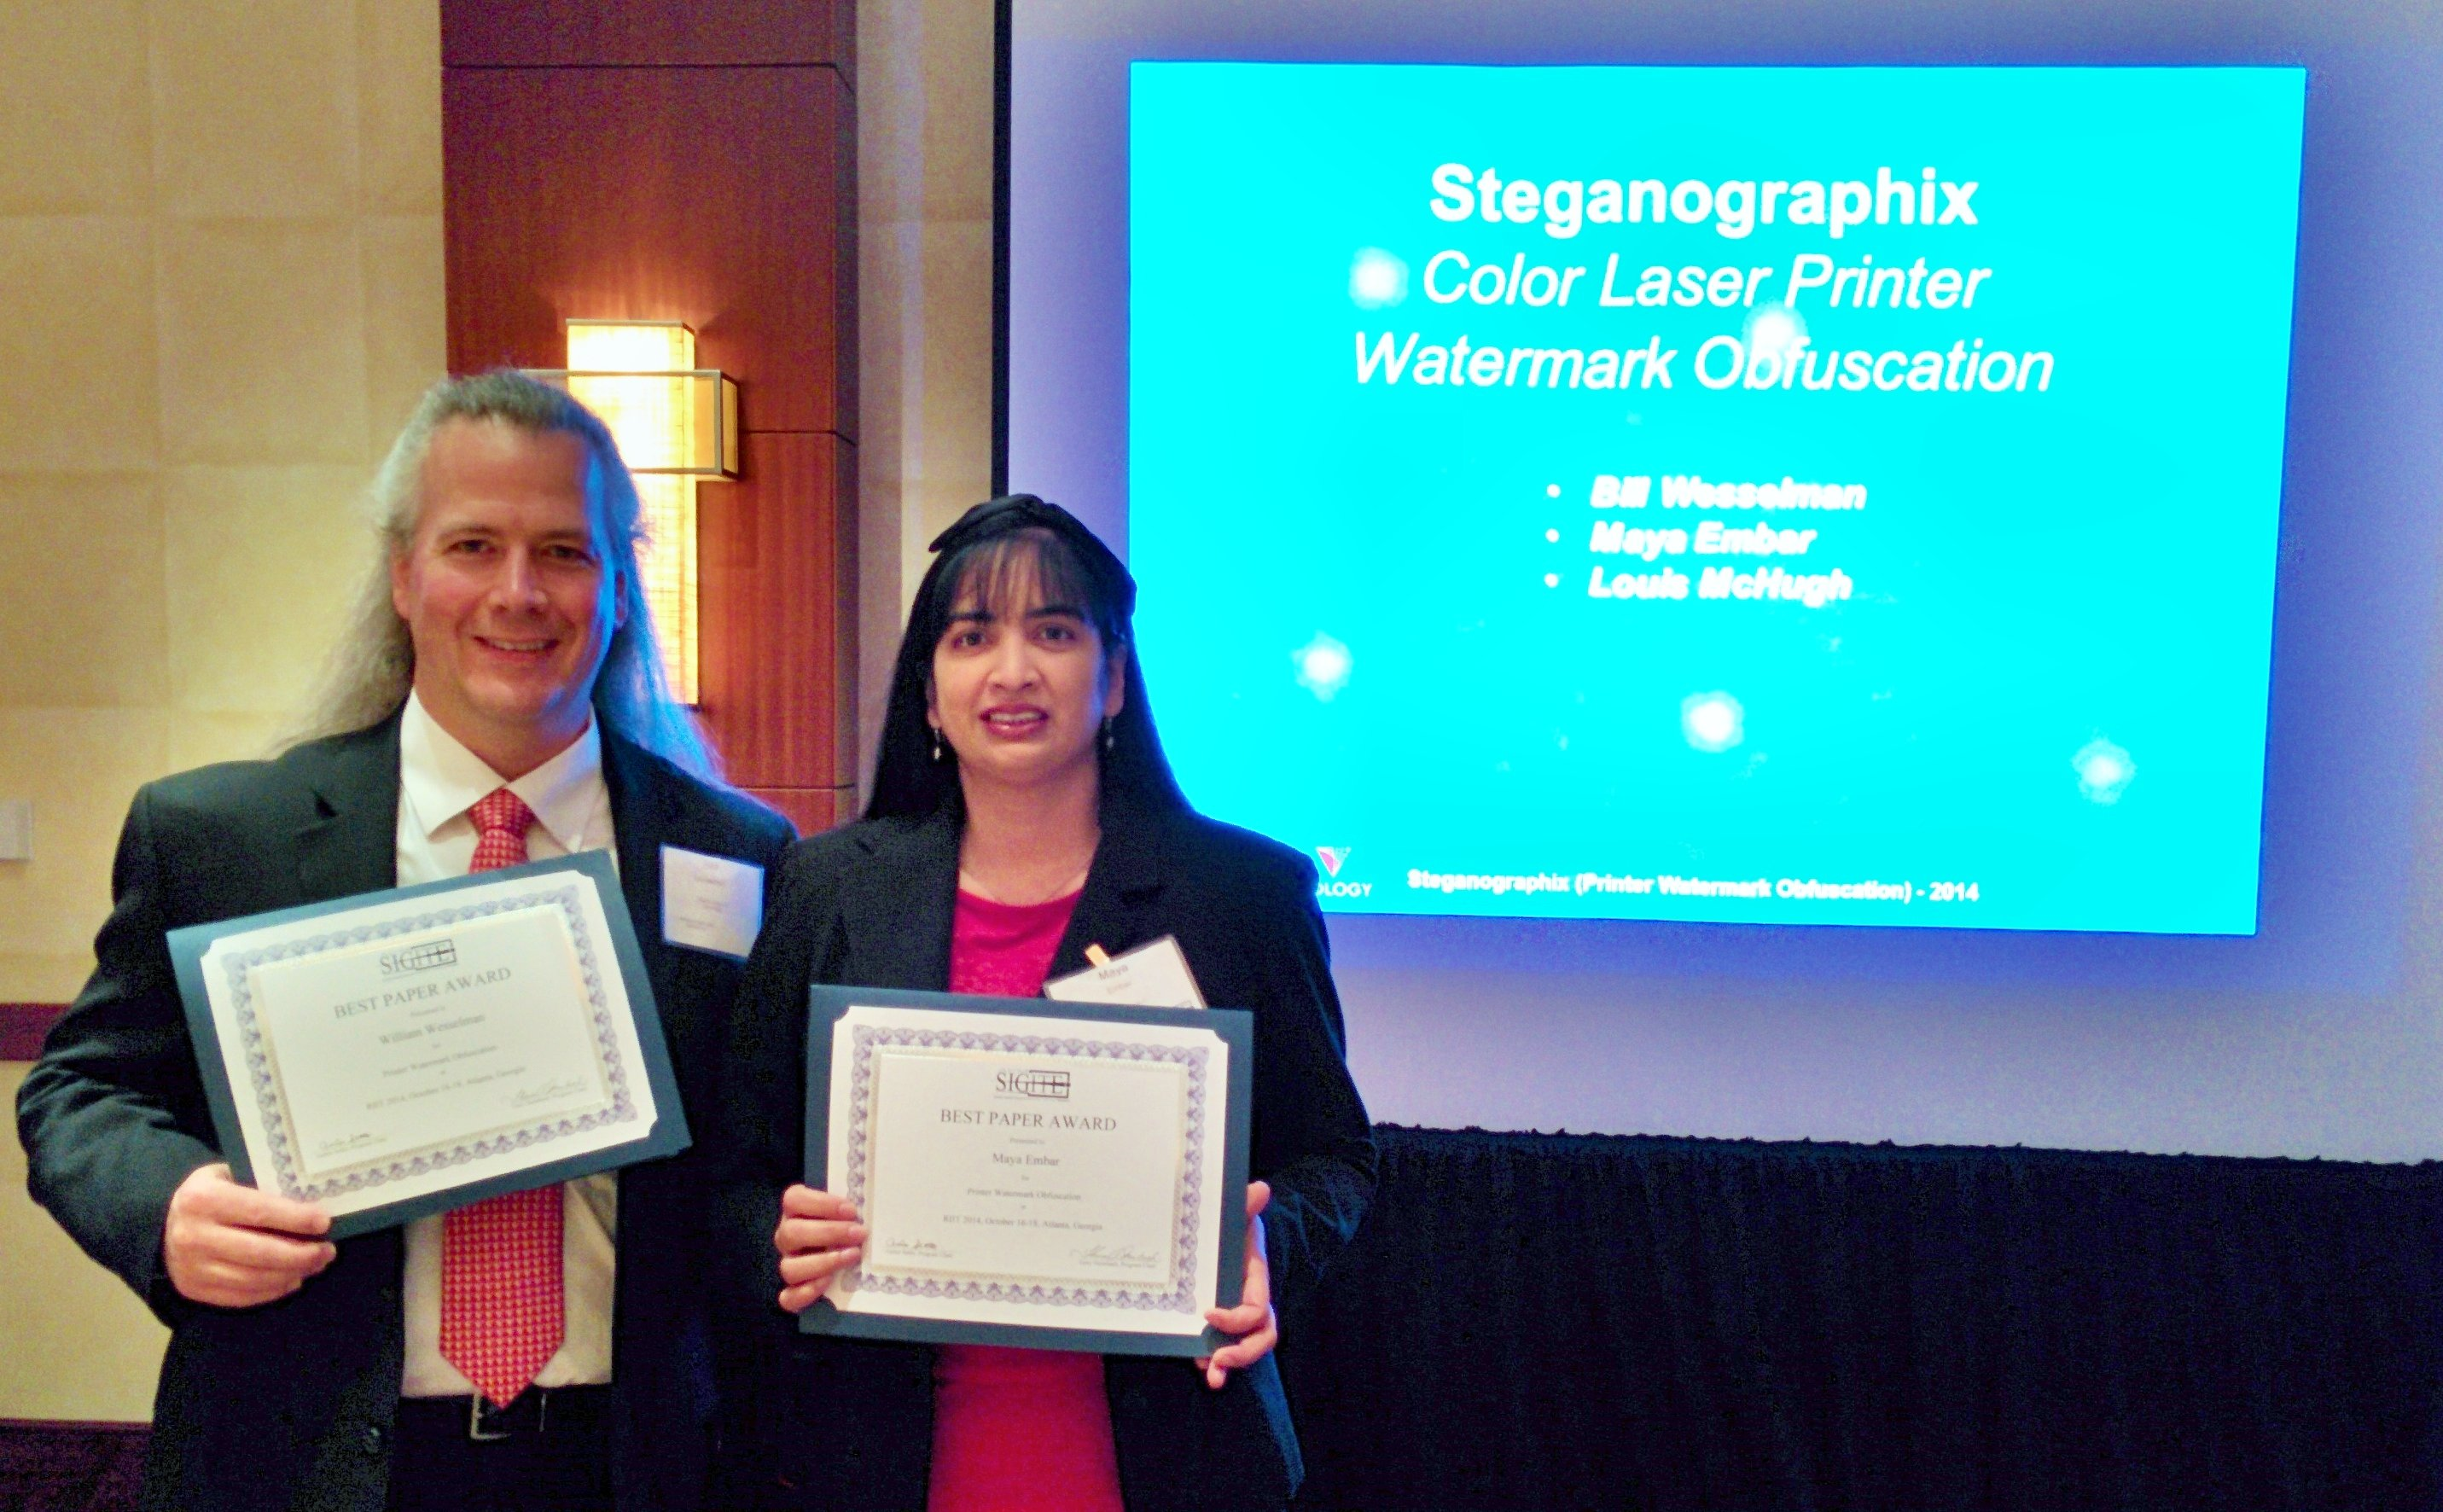 ITM students Bill Wesselman and Maya Embar display their award for ACM RIIT 2014 Best Paper.